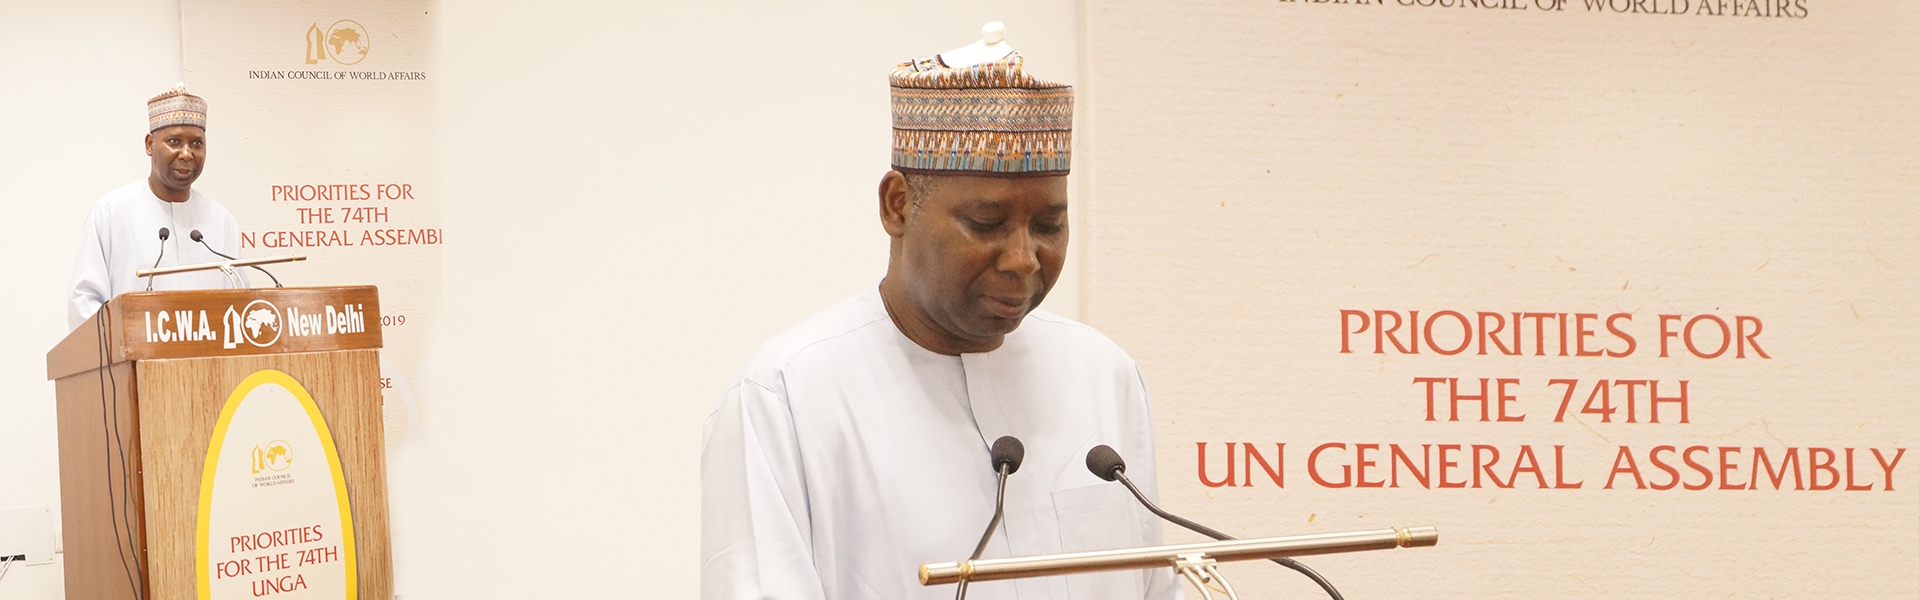 H.E. Prof. Tijjani Muhammad-Bande, President-elect of the 74th Session of United Nations General Assembly delivering a talk on Priorities for the 74th UN General Assembly, Sapru House, 2 September 2019.